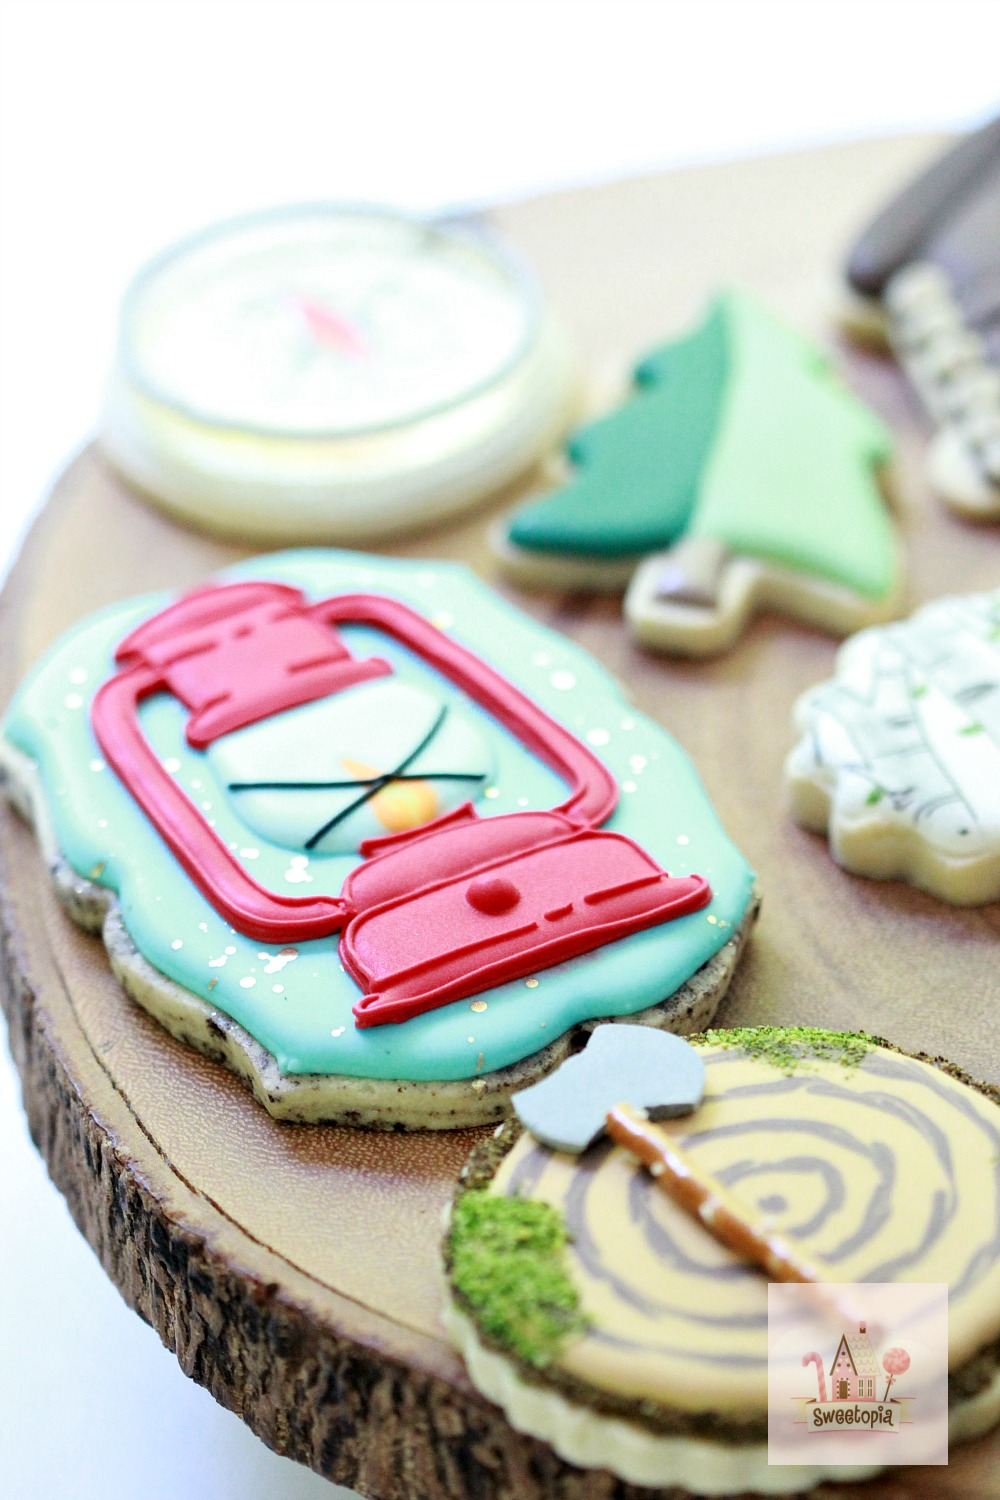 Video on How to Decorate Camping Cookies with Royal Icing Sweetopia